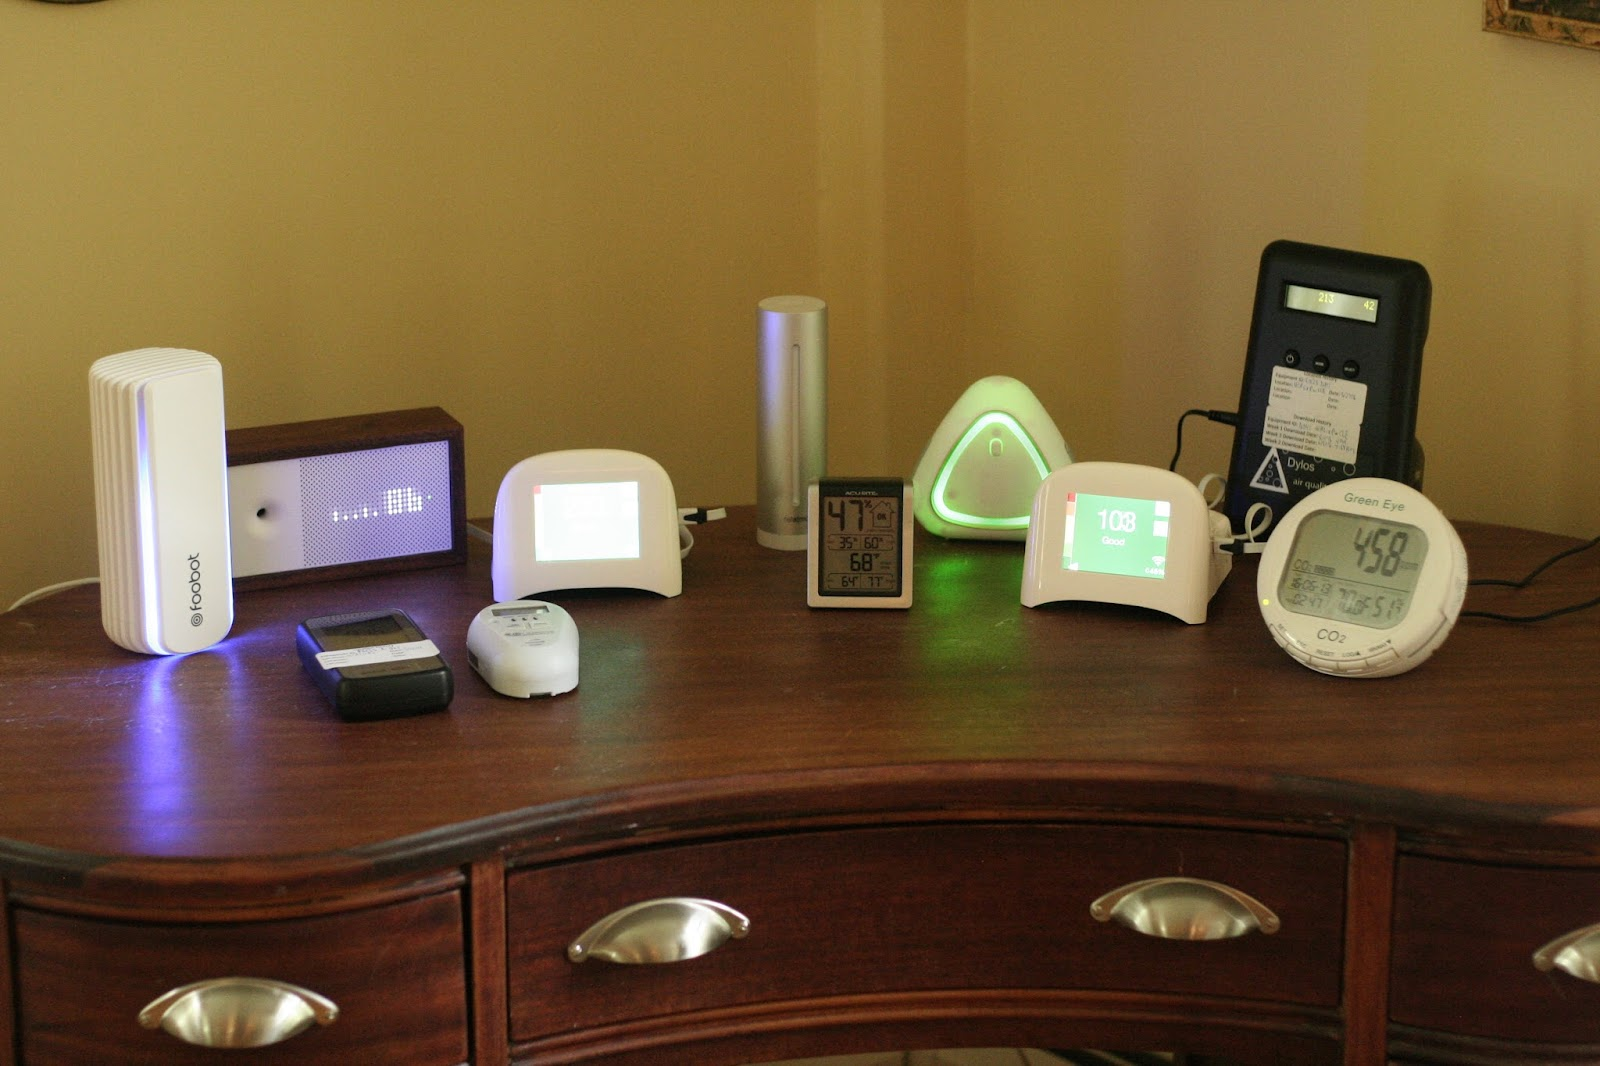 Indoor Air Quality monitors left to right back row Foobot, Awair, Speck, NetAtMo, AcuRite 00613, 6 in 1, Speck, Dylos Pro, GreenEye CO2. Front row Corentium radon, CO Experts carbon monoxide.